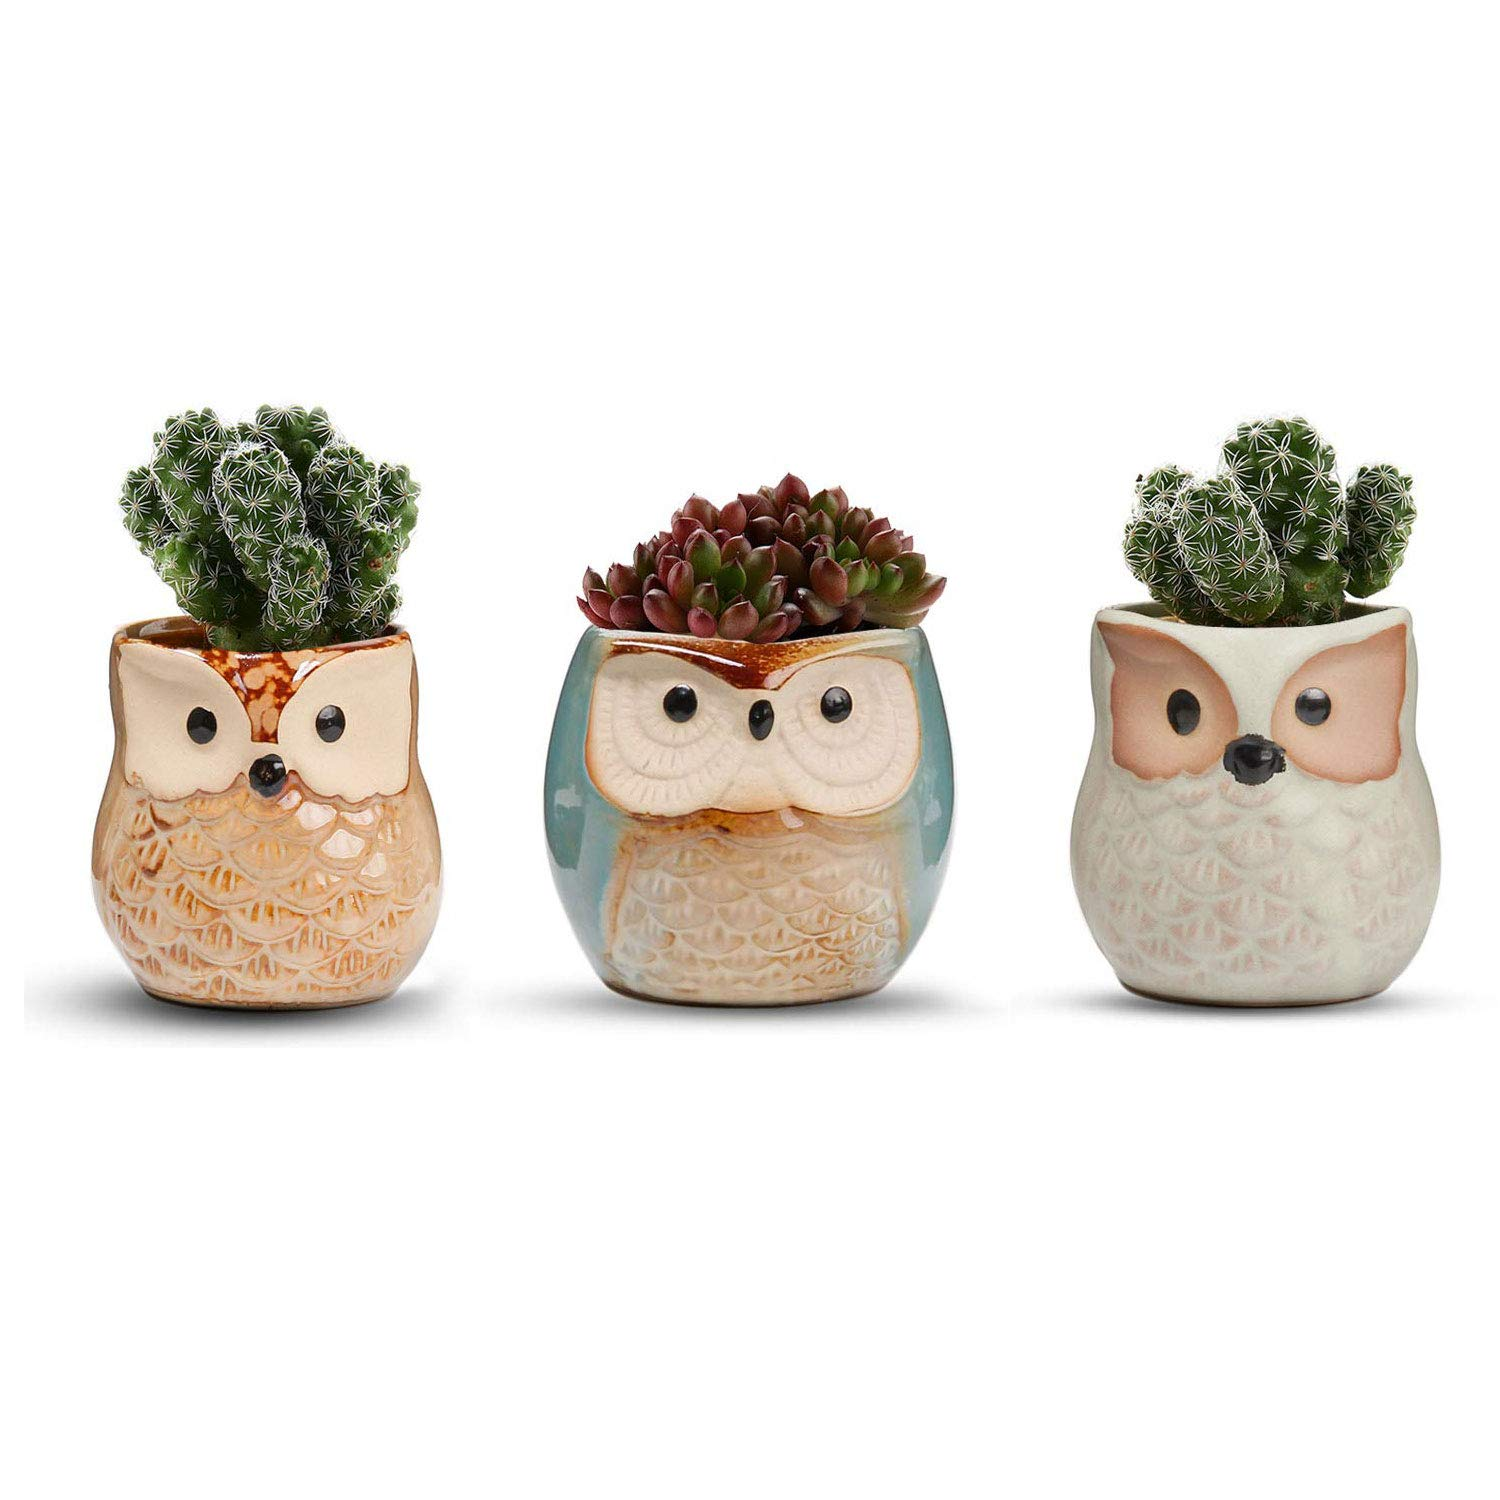 T4U 2.5 Inch Ceramic Succulent Planter Pots Mini Size, Cute Owl Bonsai Pots Home and Office Decoration Desktop Windowsill Gift,Perfect Gift for Gardener on The Birthday Set of 3